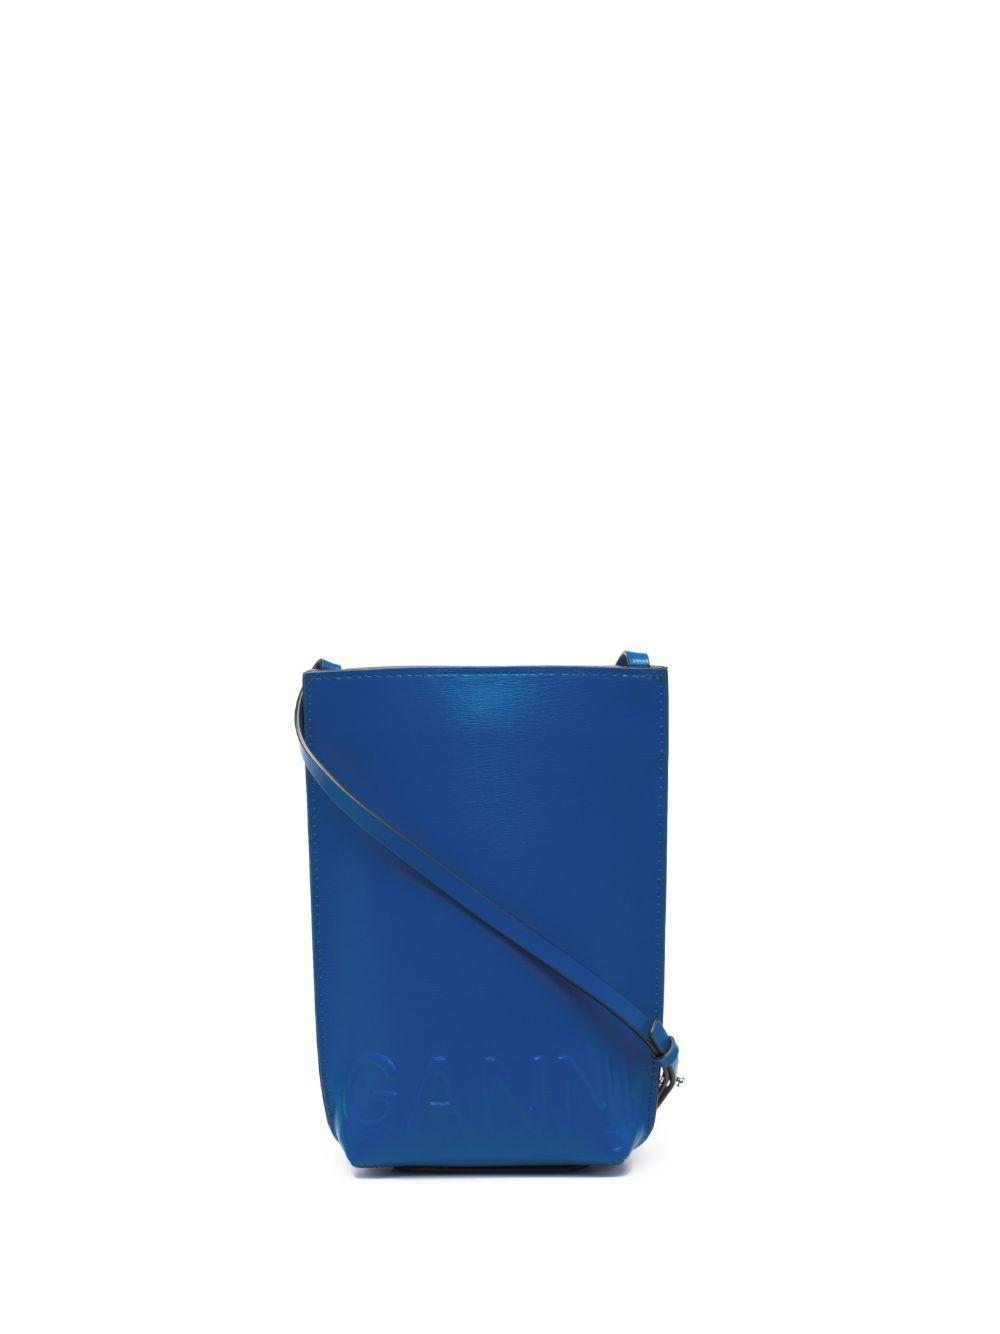 Logo Embossed Recycled Leather Crossbody Item # A3498